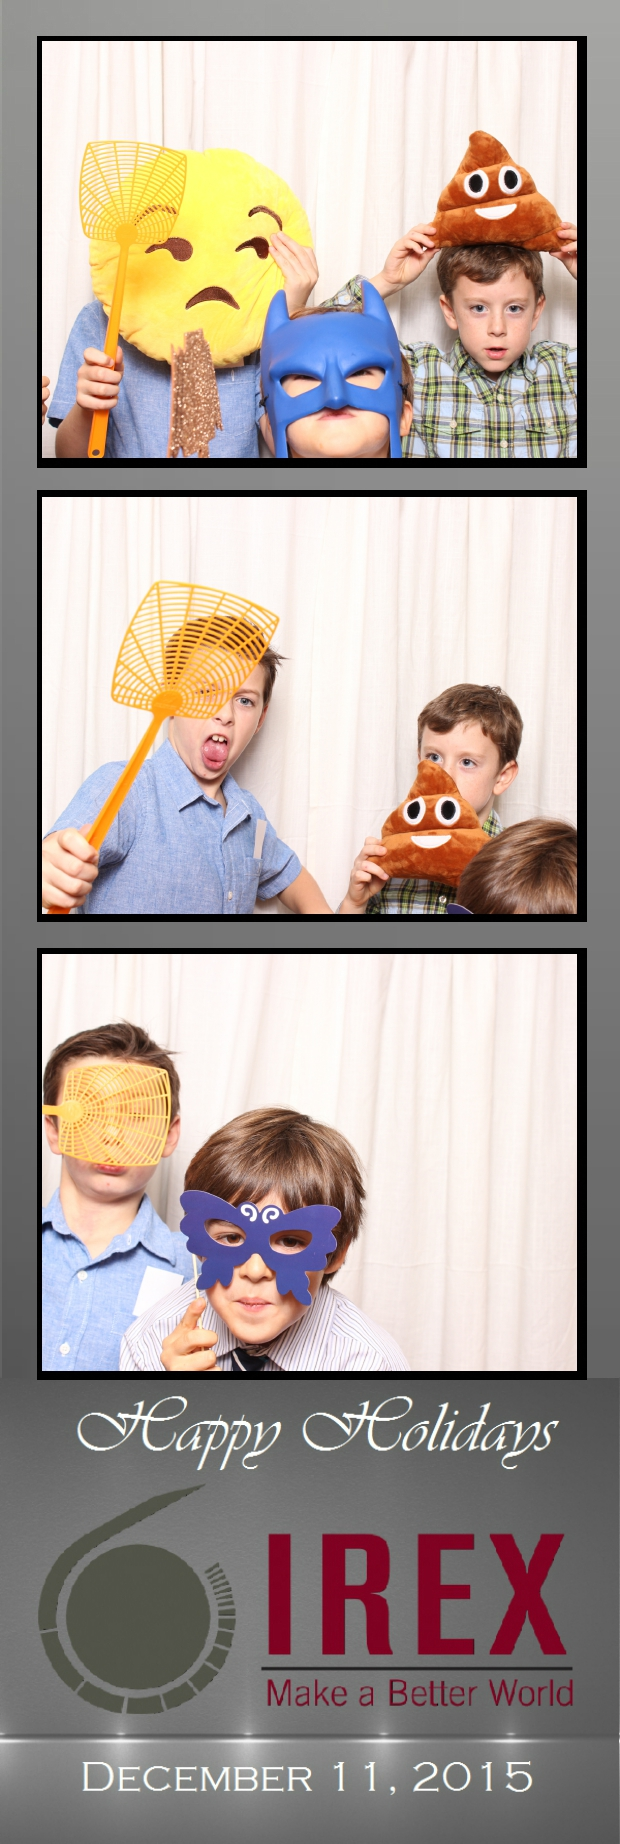 Guest House Events Photo Booth Strips IREX (12).jpg